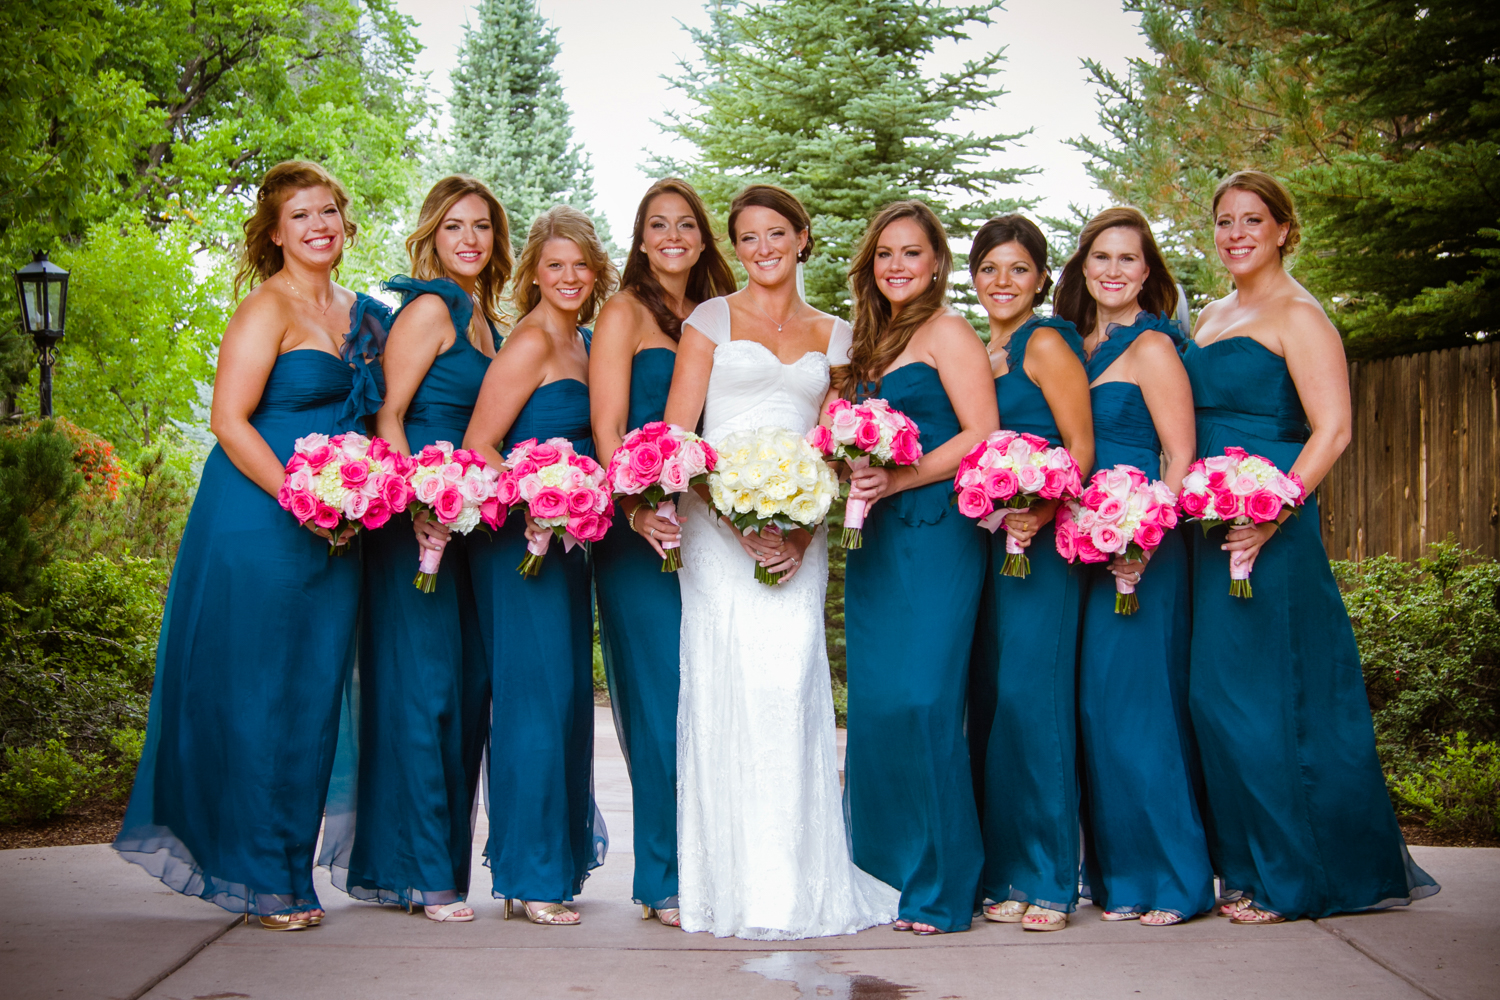 PaigeEden_Weddings_Broadmoor_012.jpg